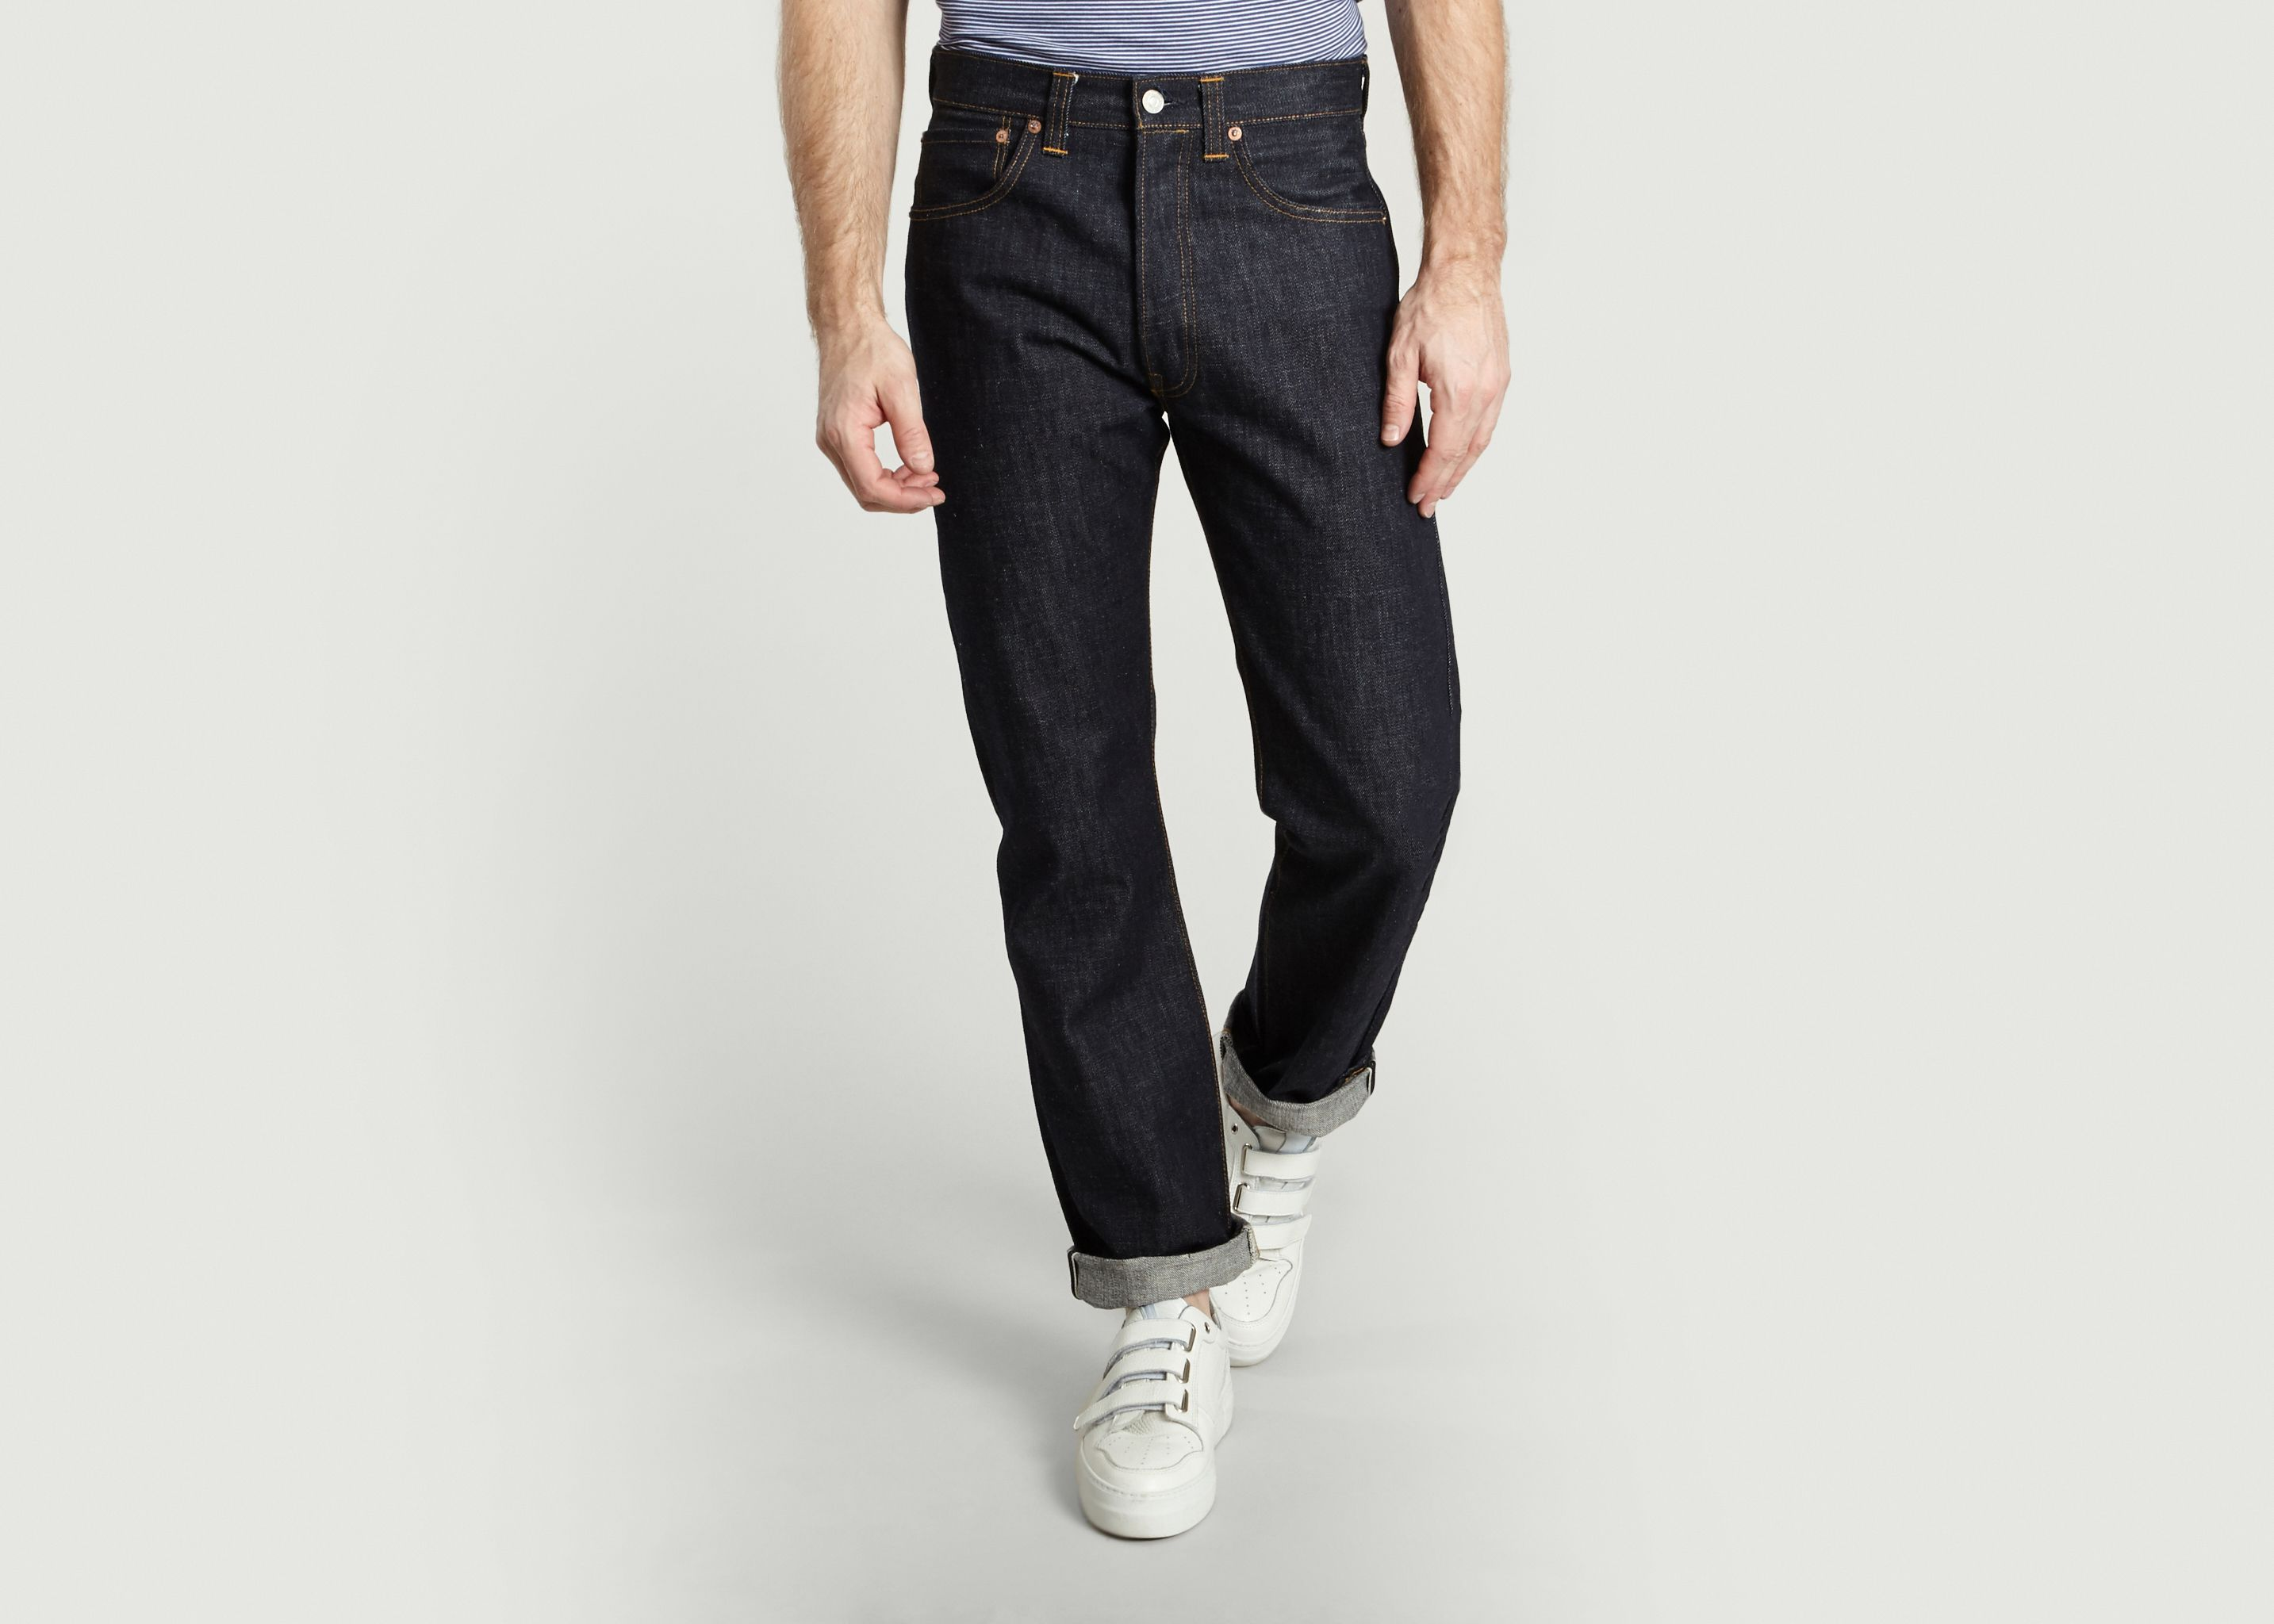 4db1cd95bbe 1947 501® Rigid Jeans Raw Levi's Vintage Clothing | L'Exception